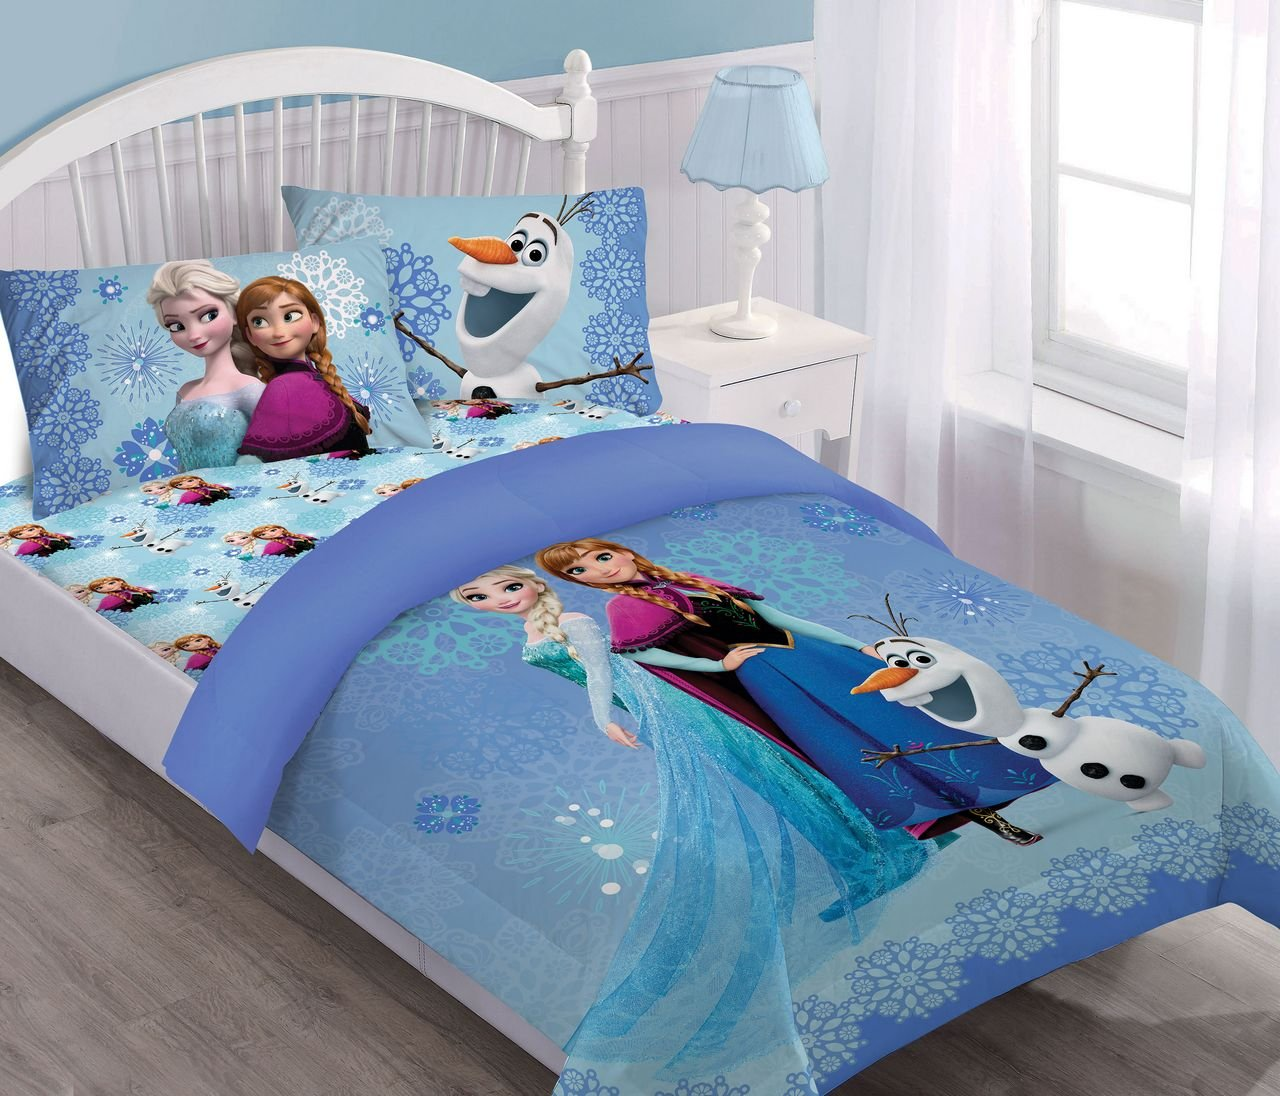 Disney Frozen Springtime Frost Twin Comforter Set with Fitted Sheet